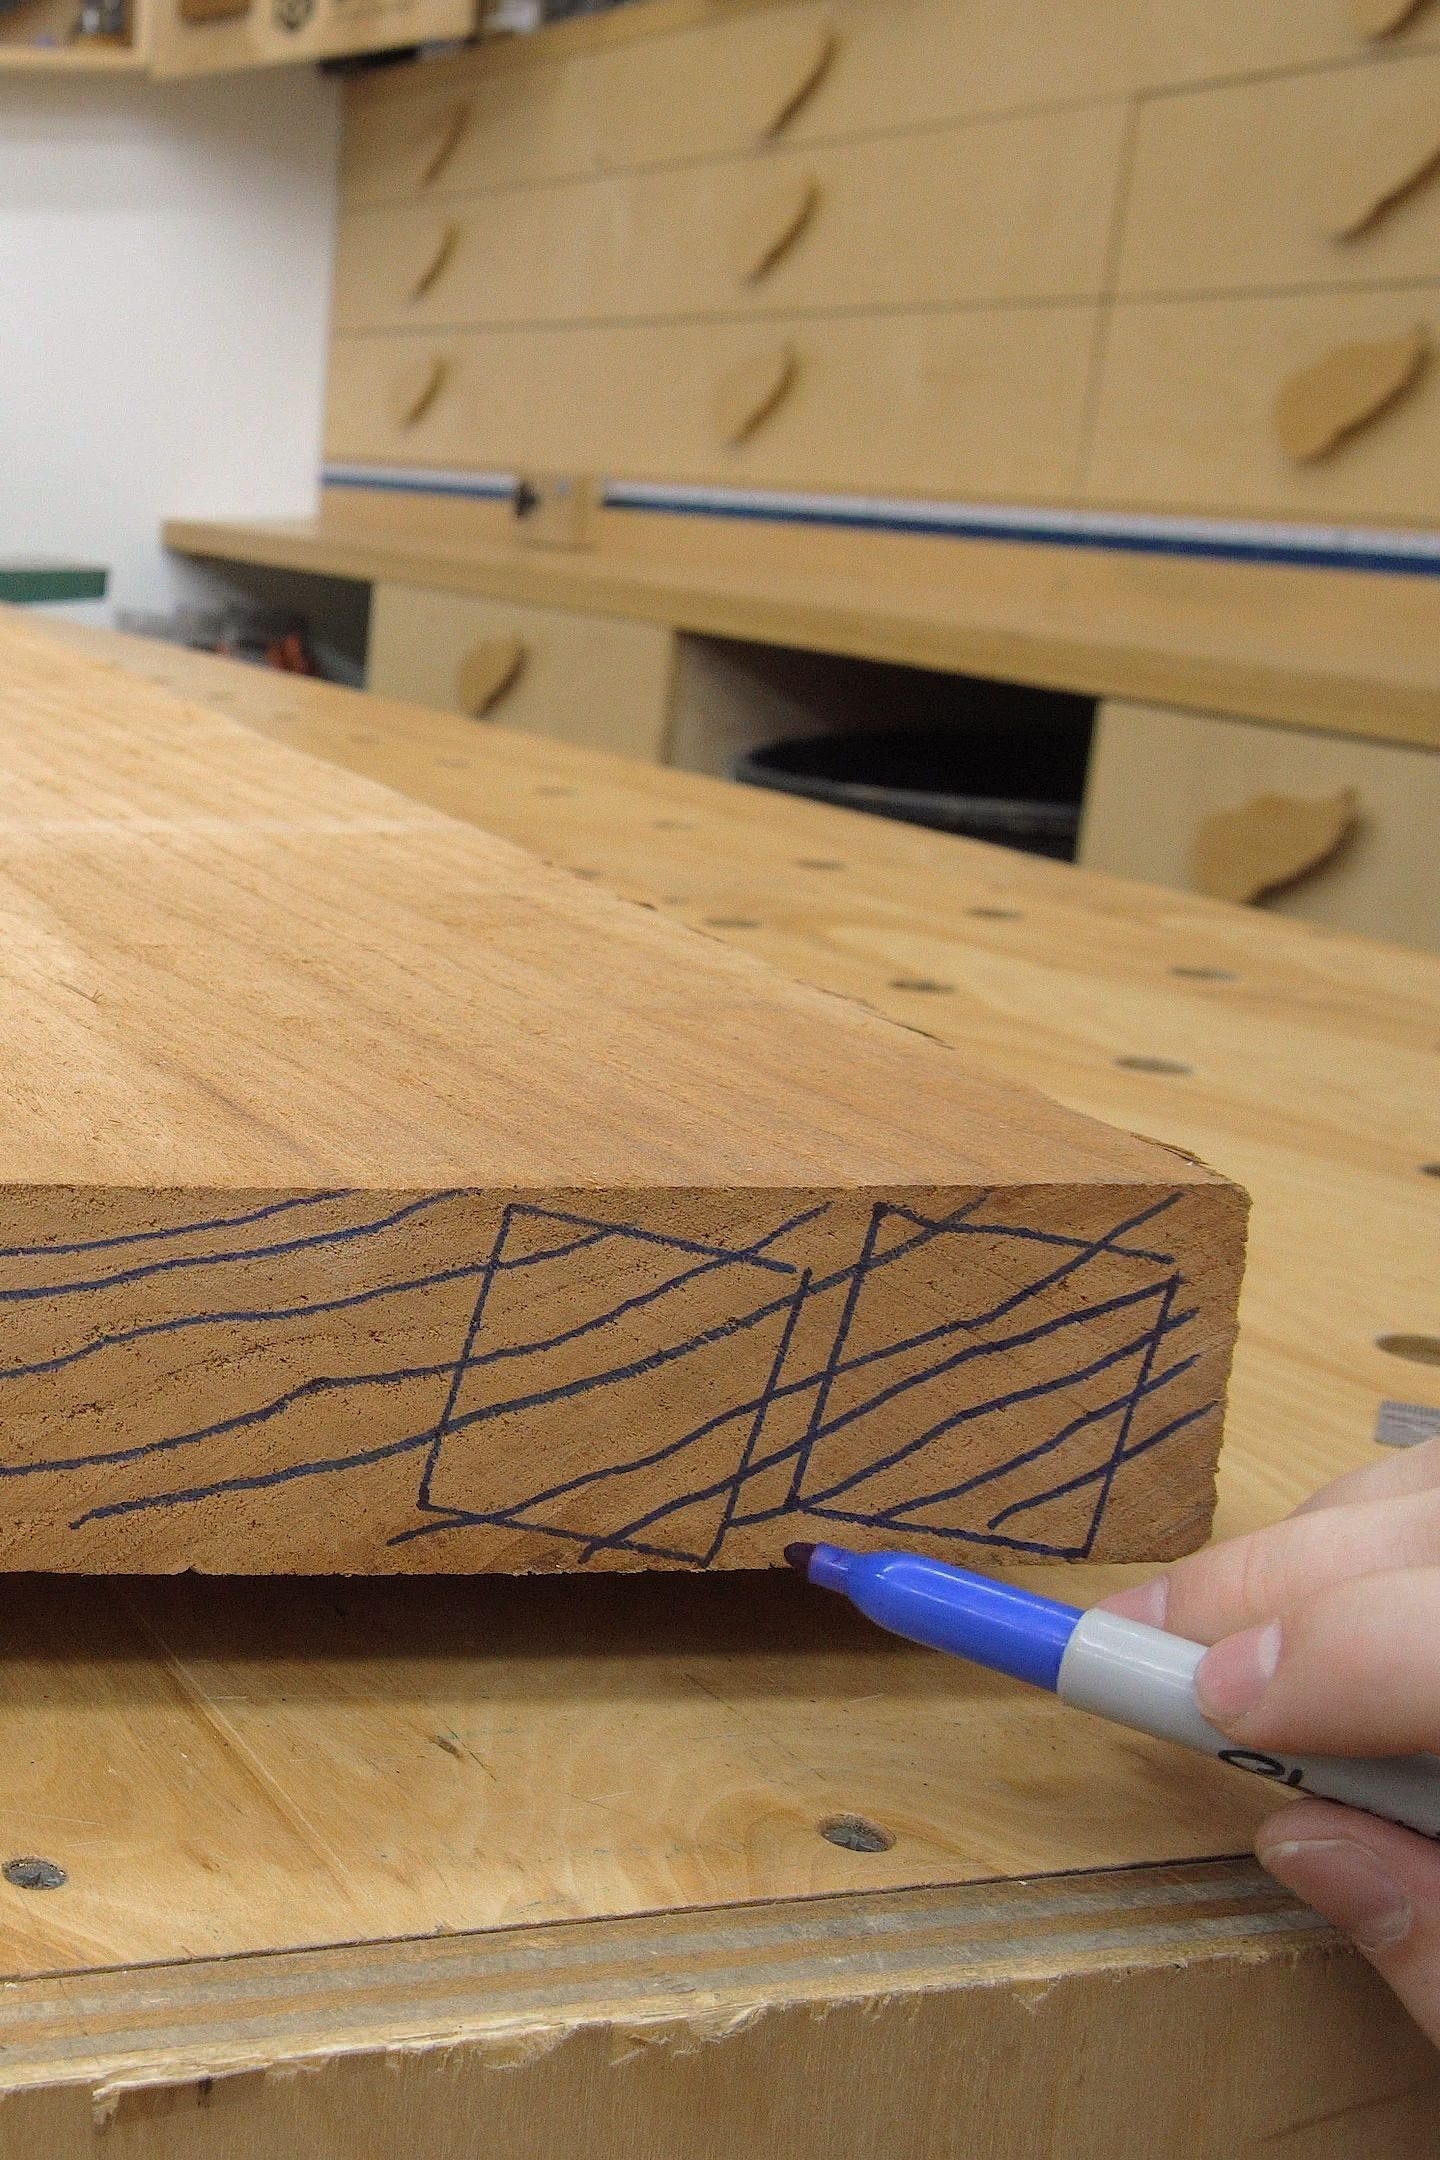 Pin By Jay Bates On Woodworking Woodworking Wood Joinery Wood